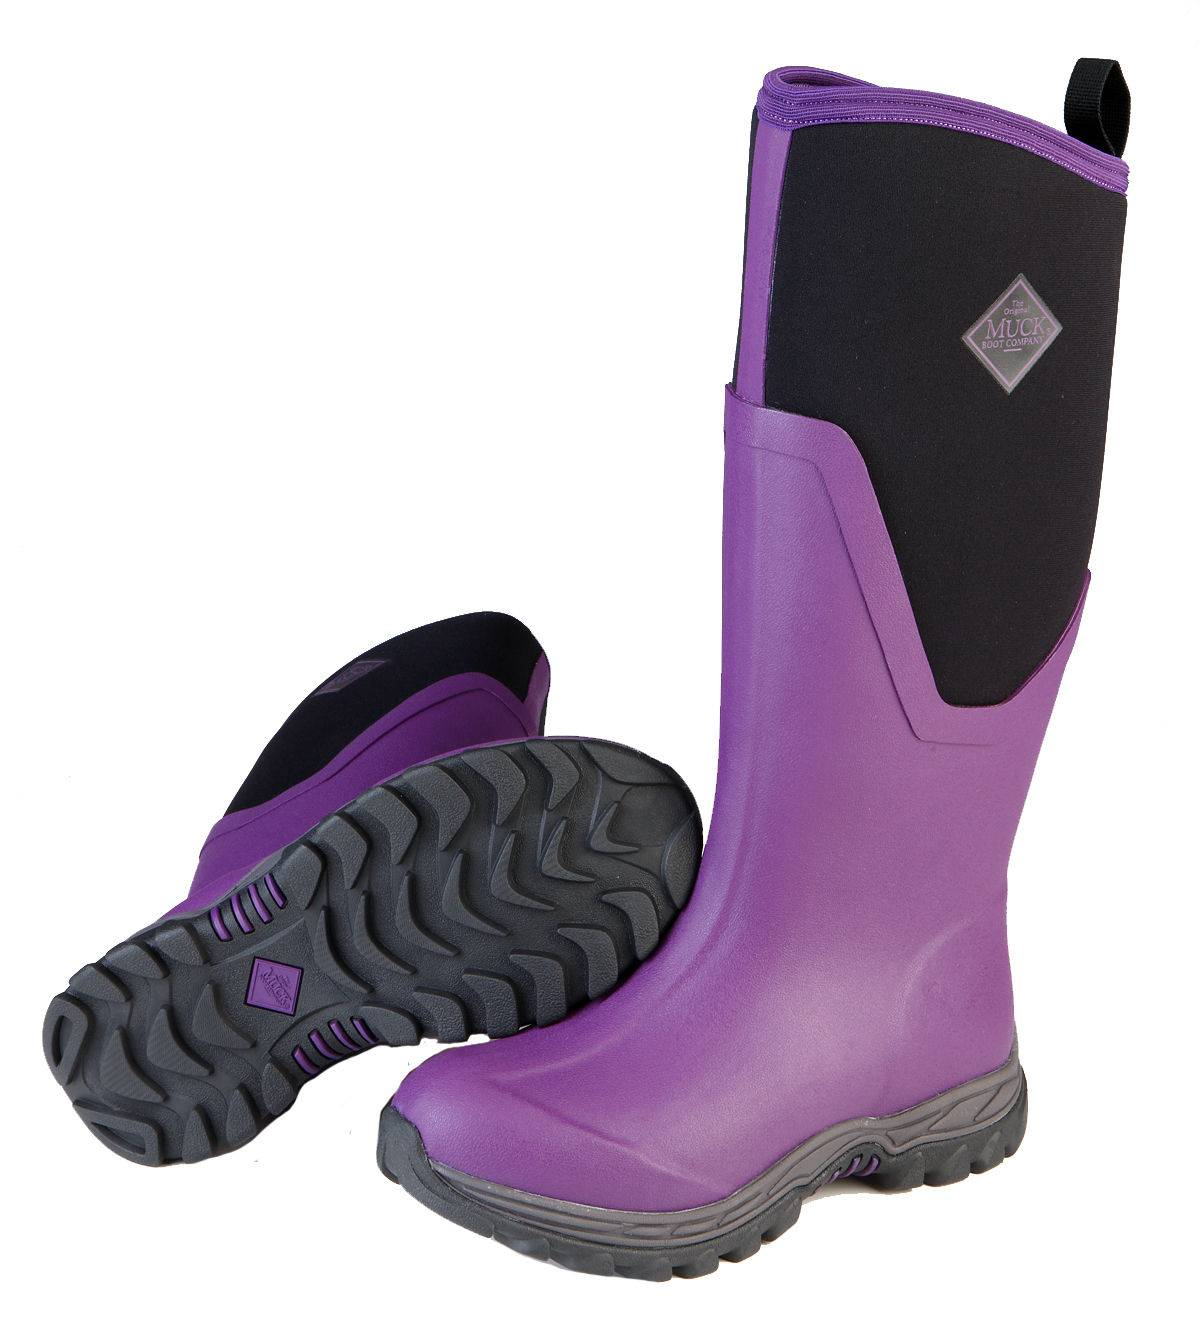 Muck Boots Women's Arctic Sport II Tall - Purple